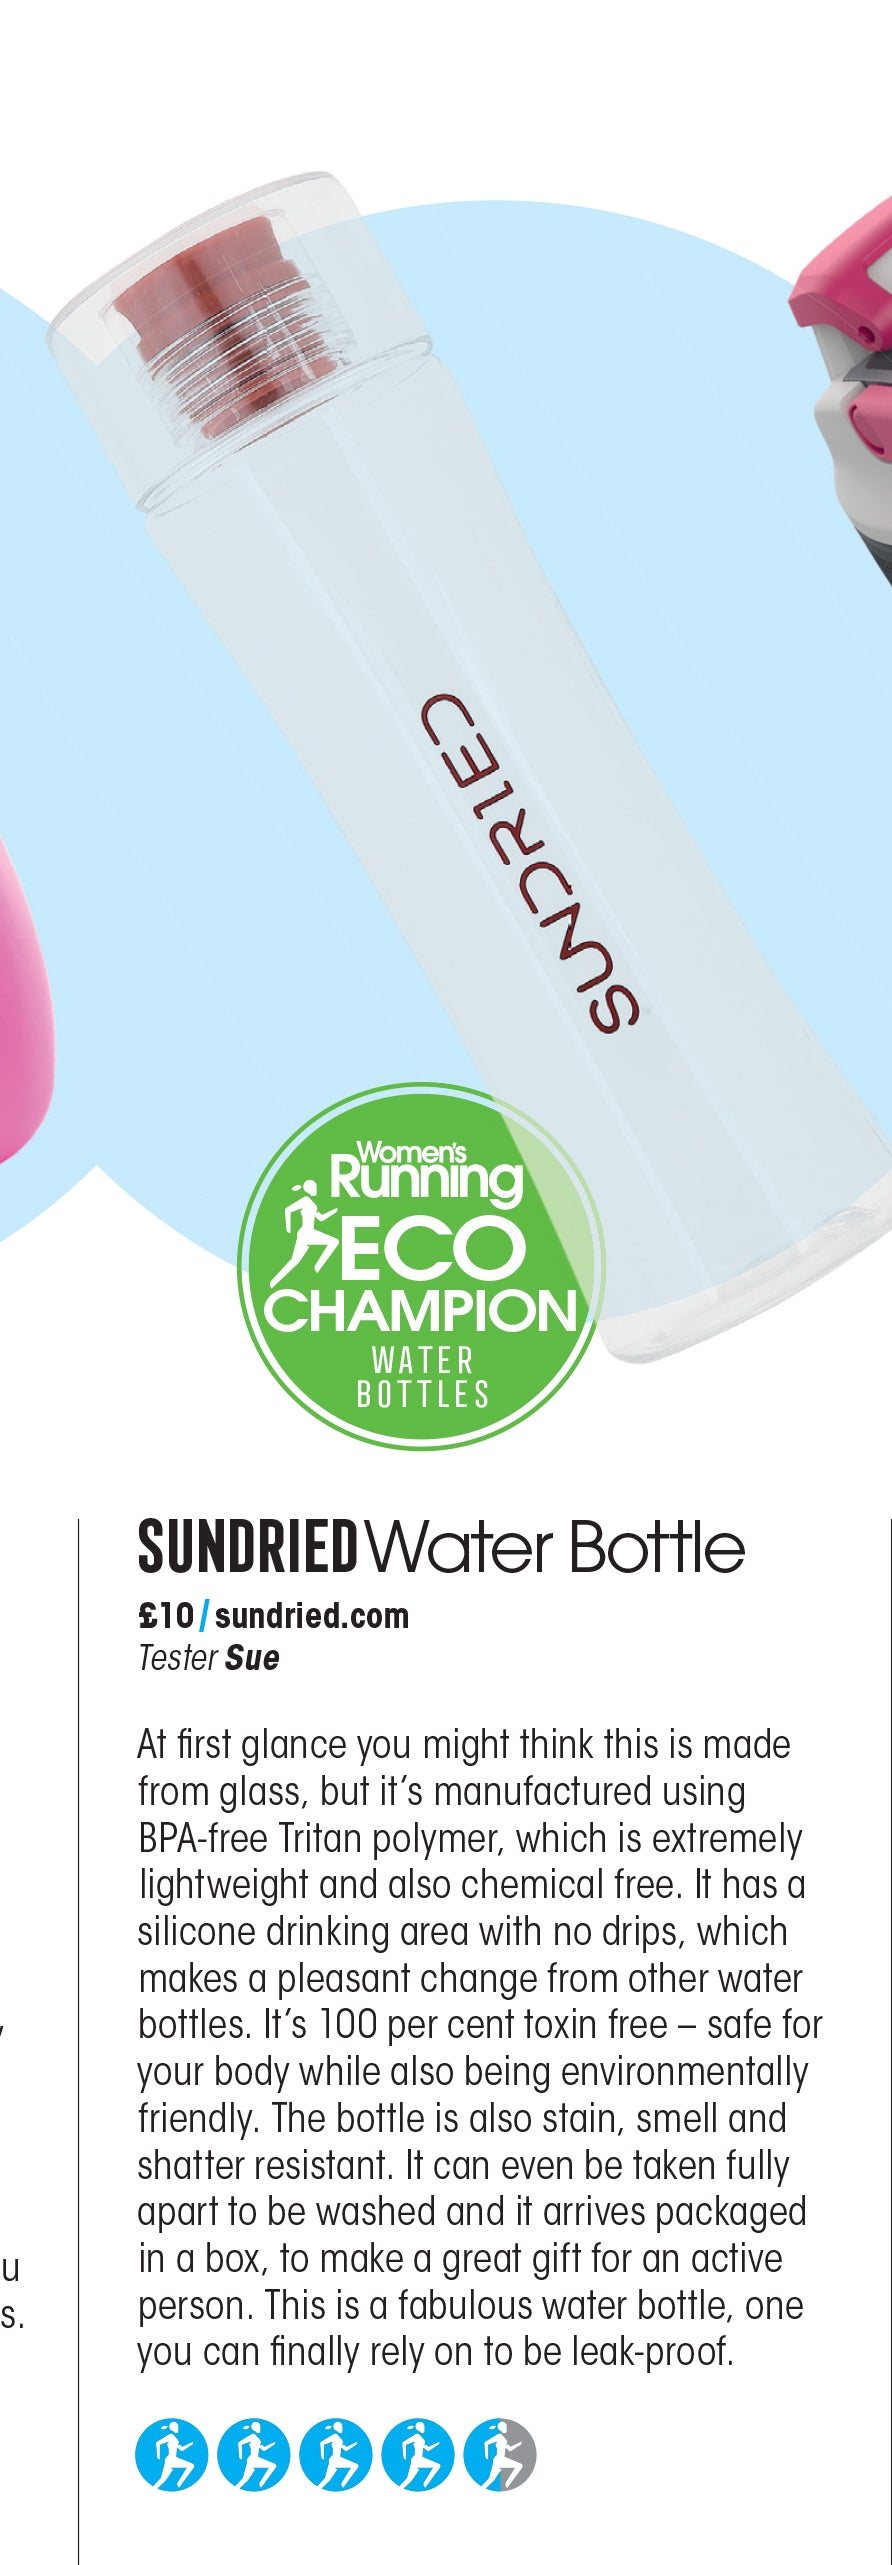 Recenzja Sundried Water Bottle w Women's Running Magazine